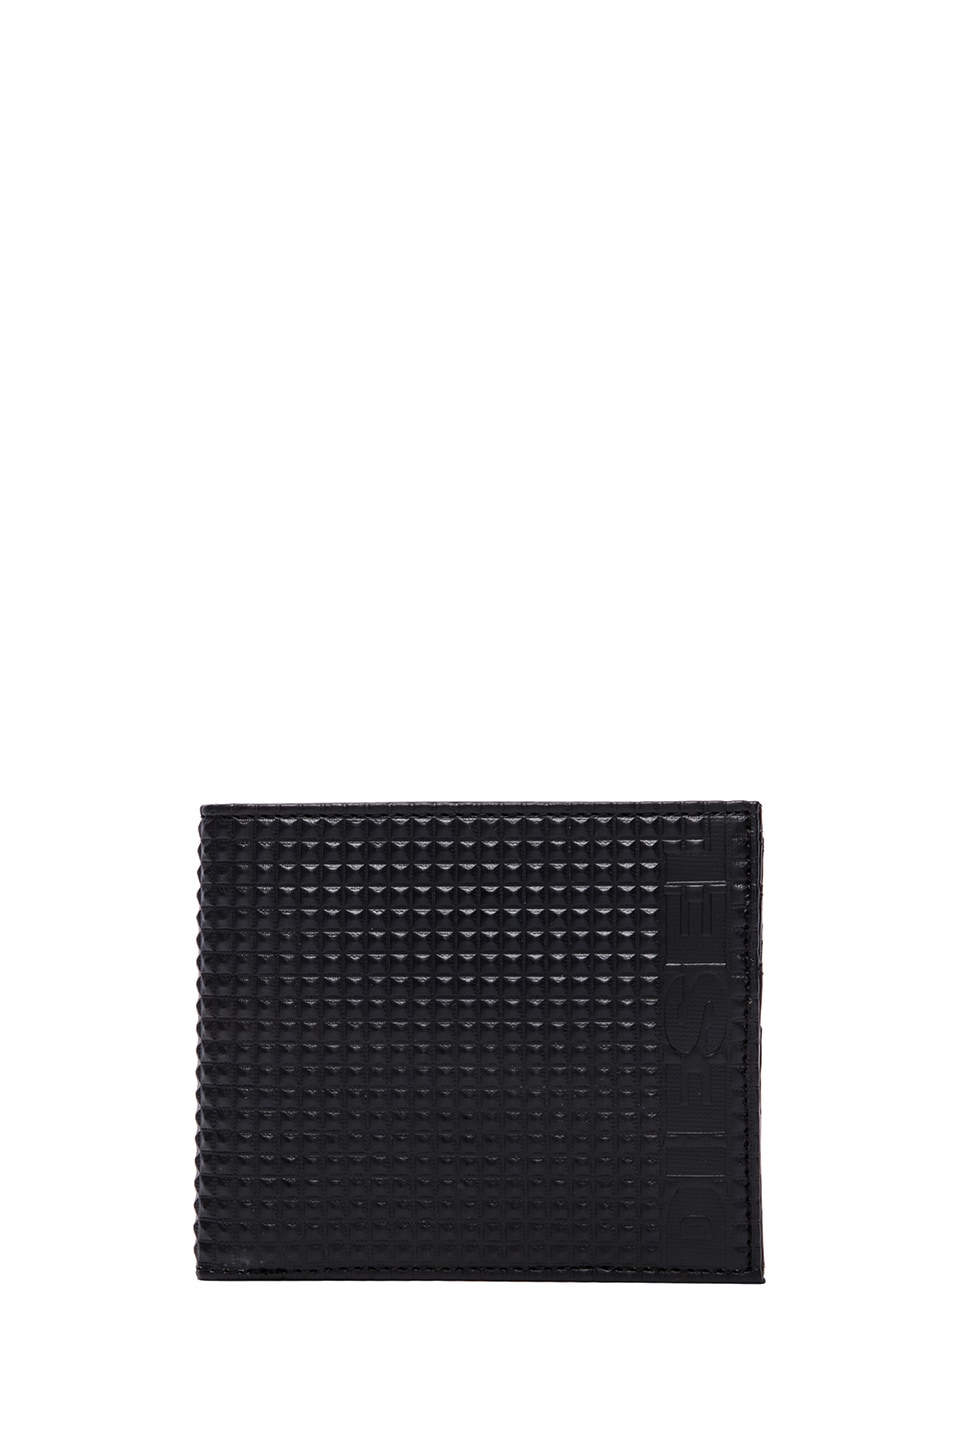 Diesel Money-Money Neela S Wallet in Black & Gloss Print